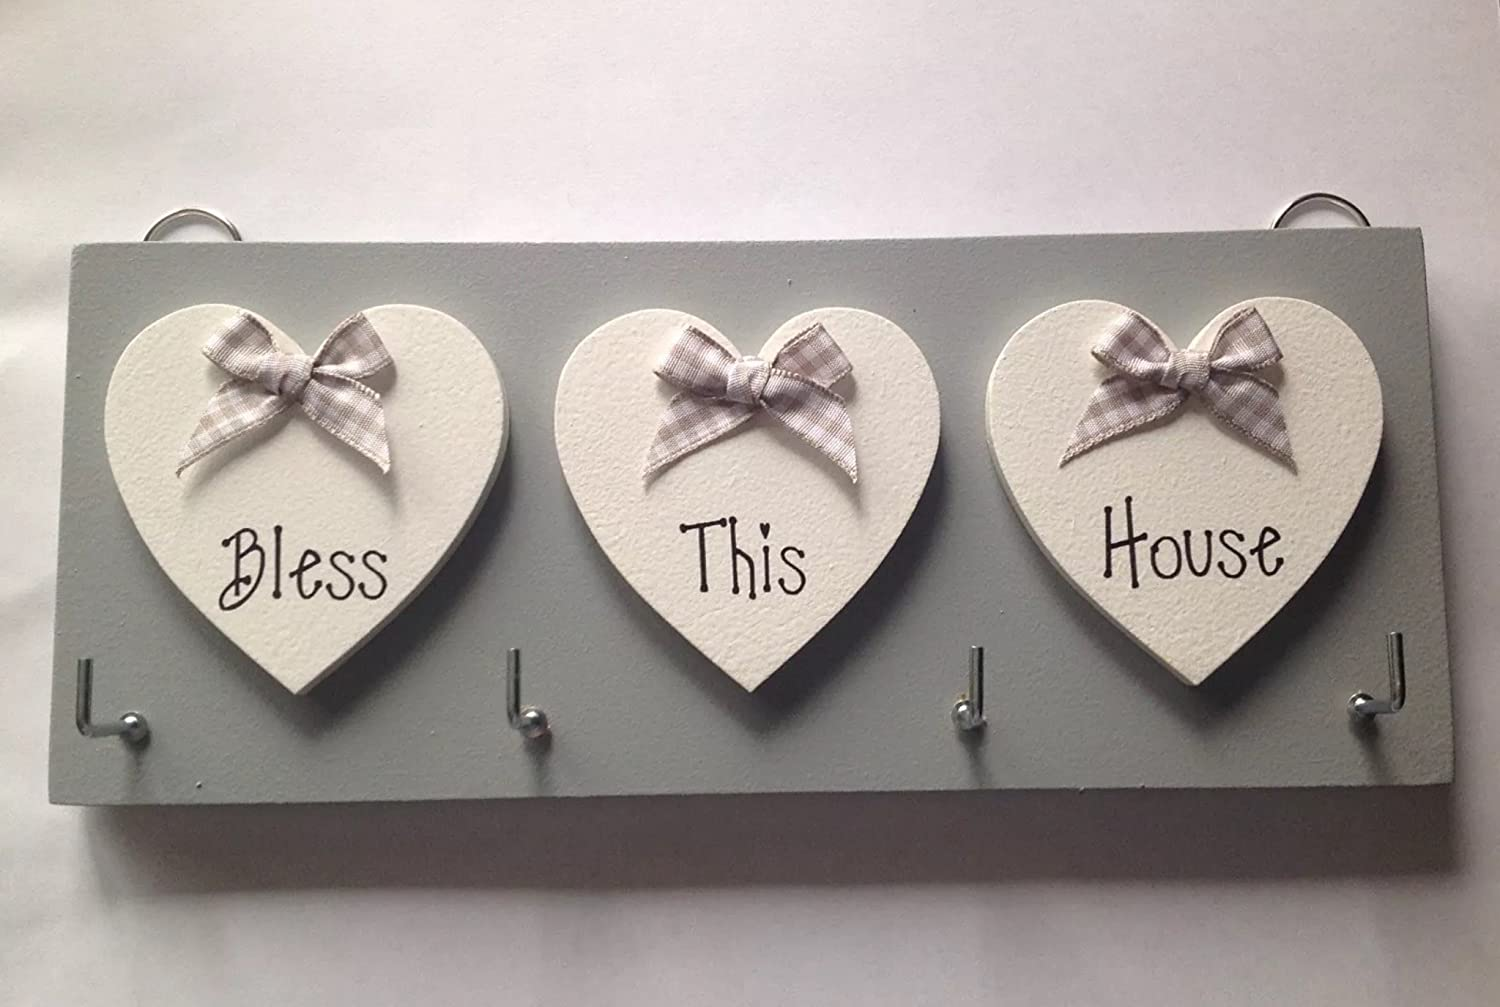 JDHL CRAFTS Key Holder Bless This House Grey 1a